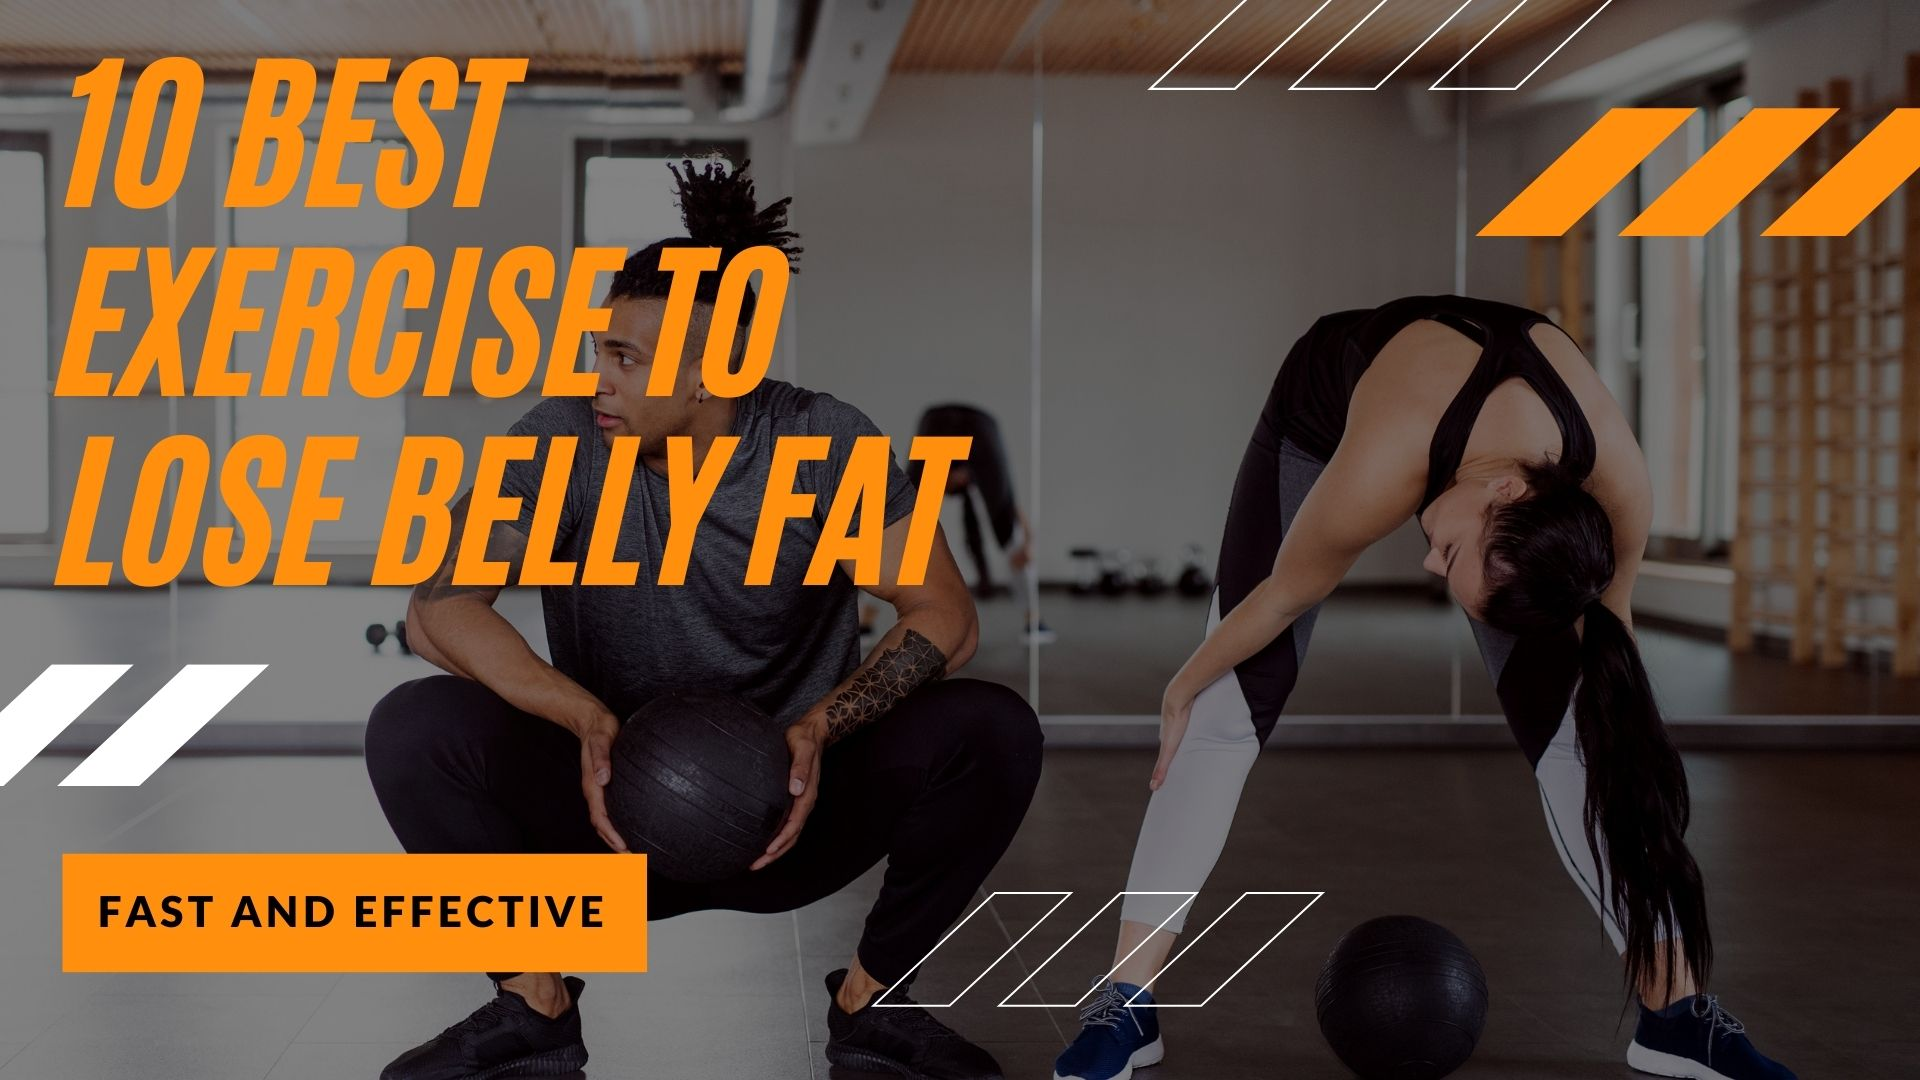 10 Best Exercise to Lose Belly Fat (Fast and Effective)